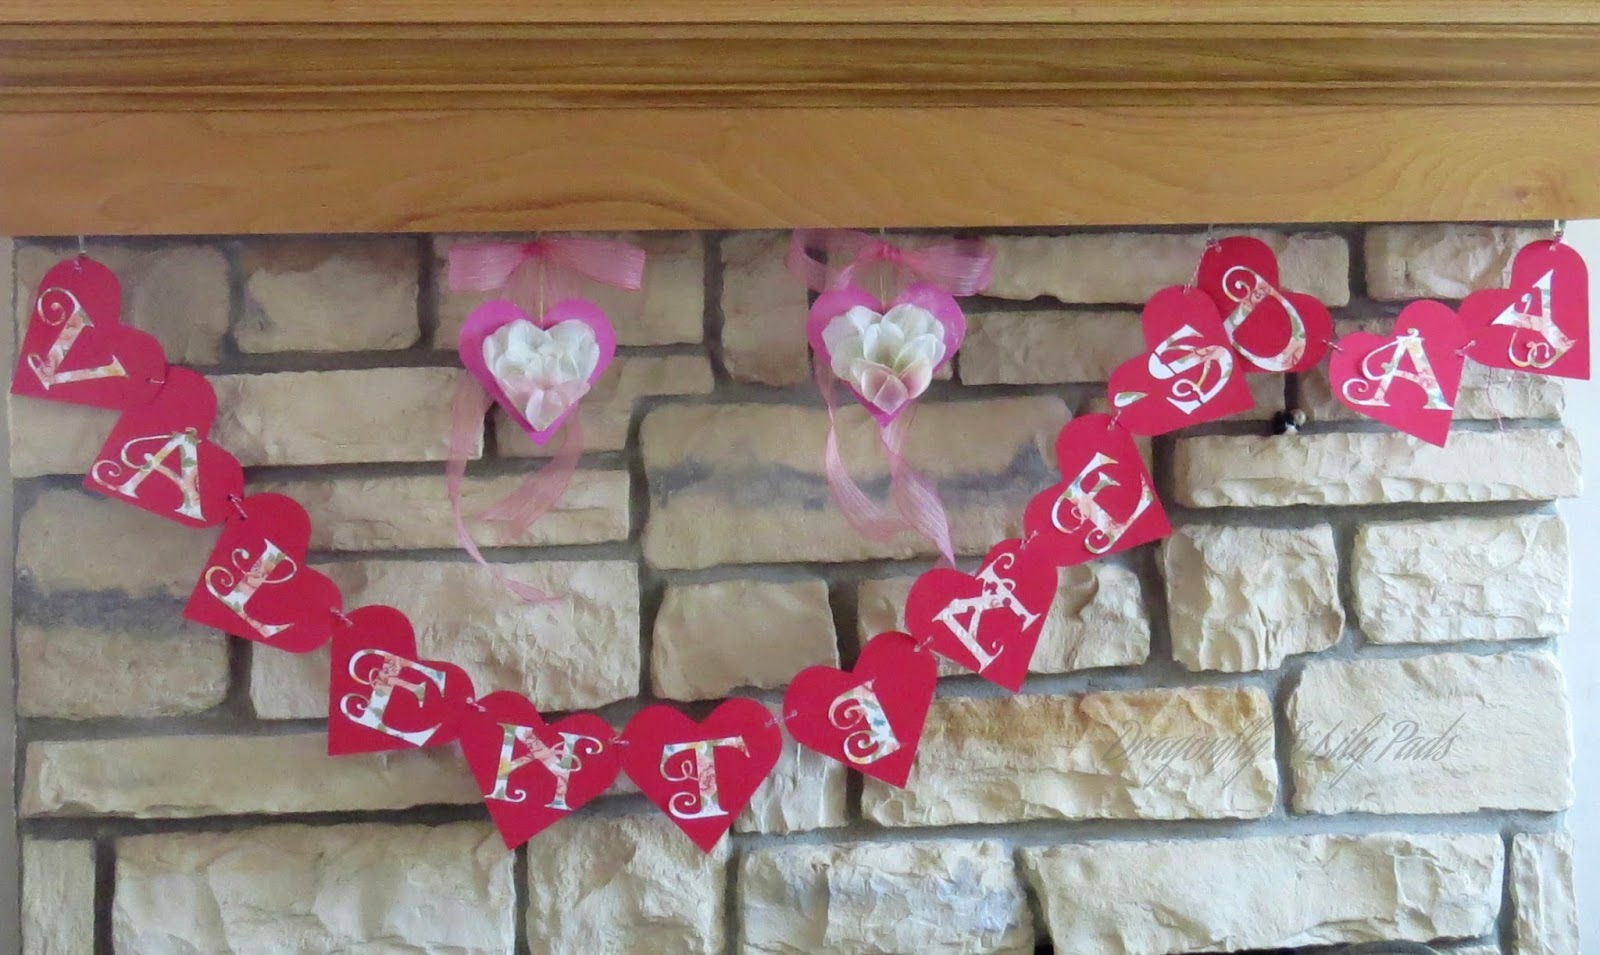 Decoupaged Hearts Decor, Valentine's Day Banner, Fireplace, Hearts, Decor